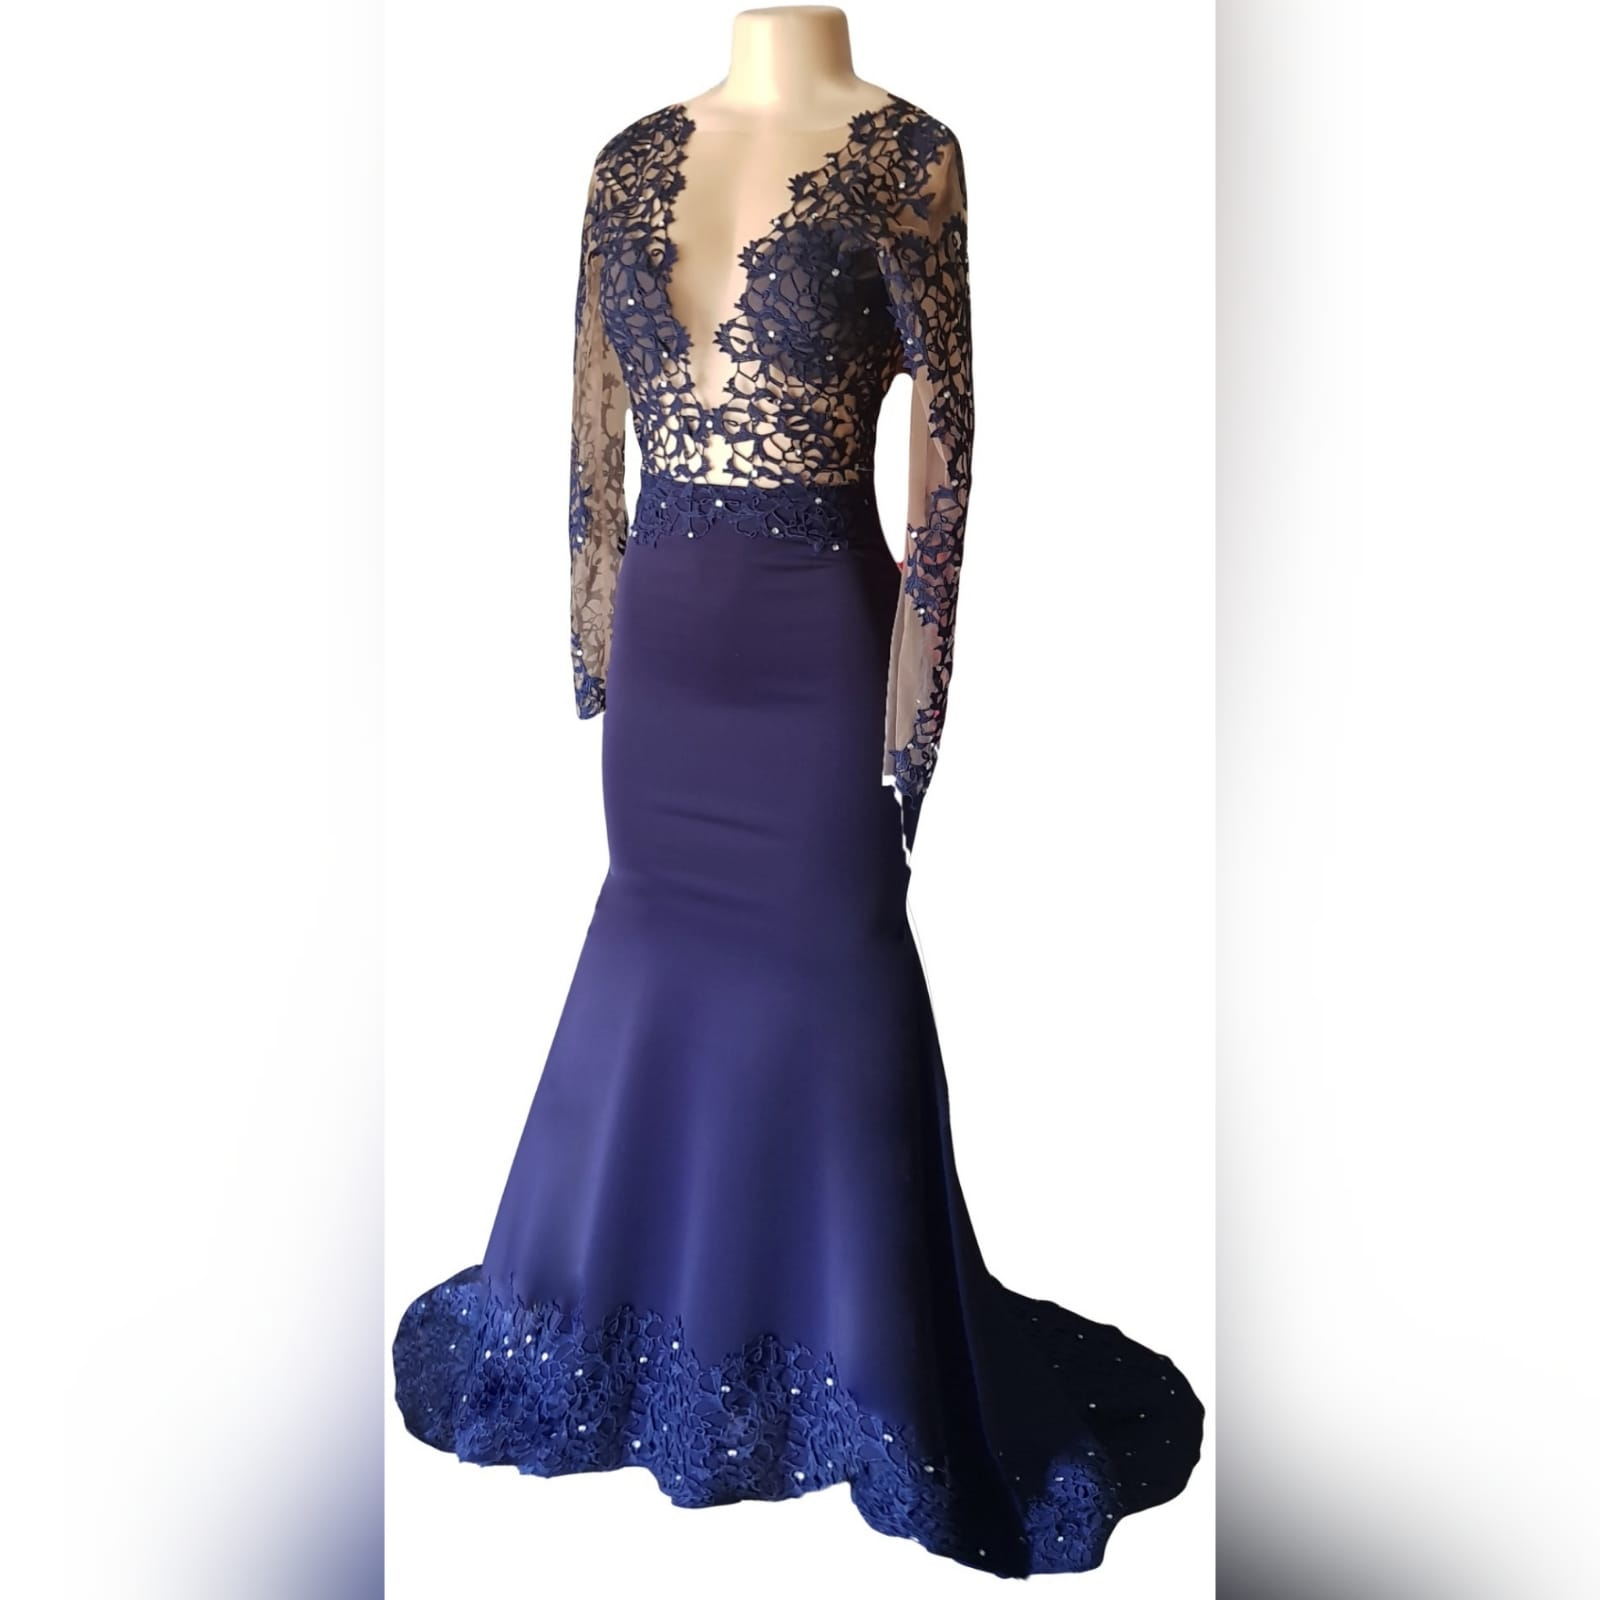 "Custom-designed navy blue mermaid prom dress 8 <em>""a girl should be two things: who and what she wants. ""</em> <em>coco chanel</em> looking stunning on her prom night, she wore a custom-designed and made the dress to fit her like a glove. This navy blue mermaid prom dress has a sheer lace bodice and sleeves, a lace border and scattered silver beads. A dramatic train and a v open back."